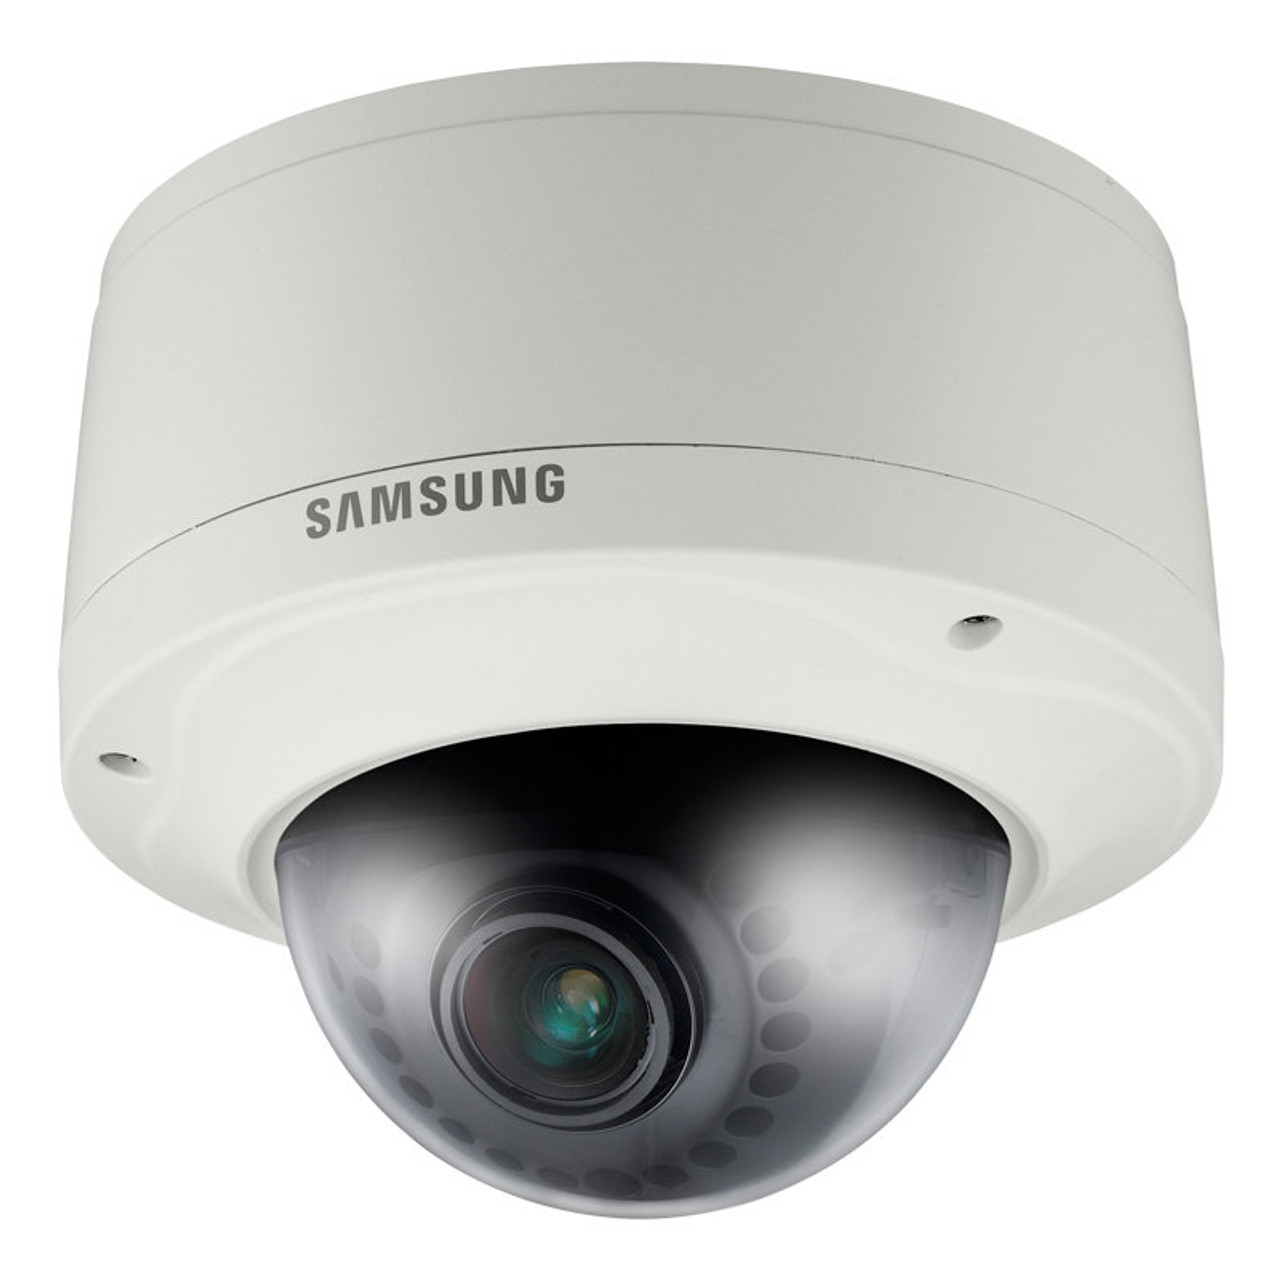 SAMSUNG SNV-3082 NETWORK CAMERA WINDOWS 10 DRIVER